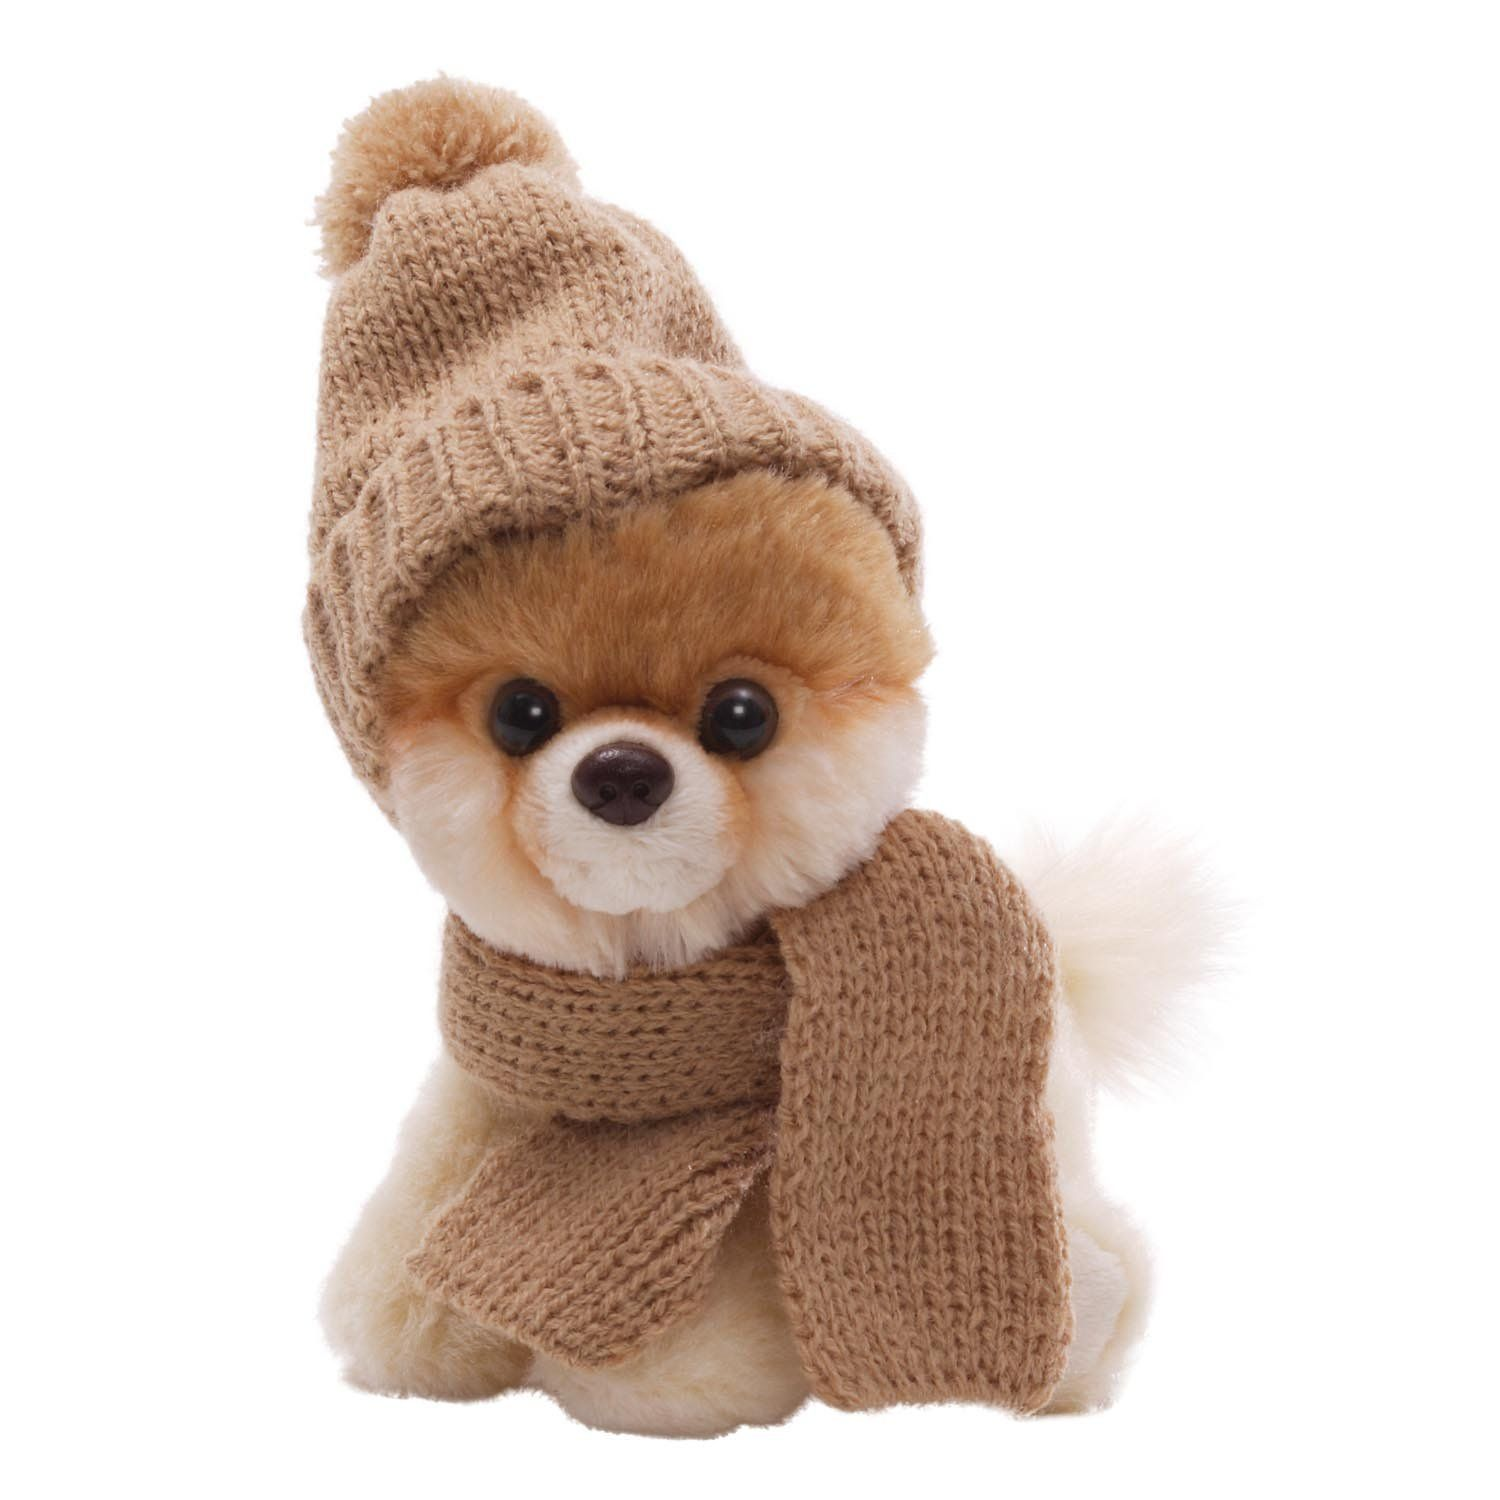 """Amazon.com: Gund 5"""" Itty Bitty Boo in Knit Scarf and Cap Plush: Toys & Games"""